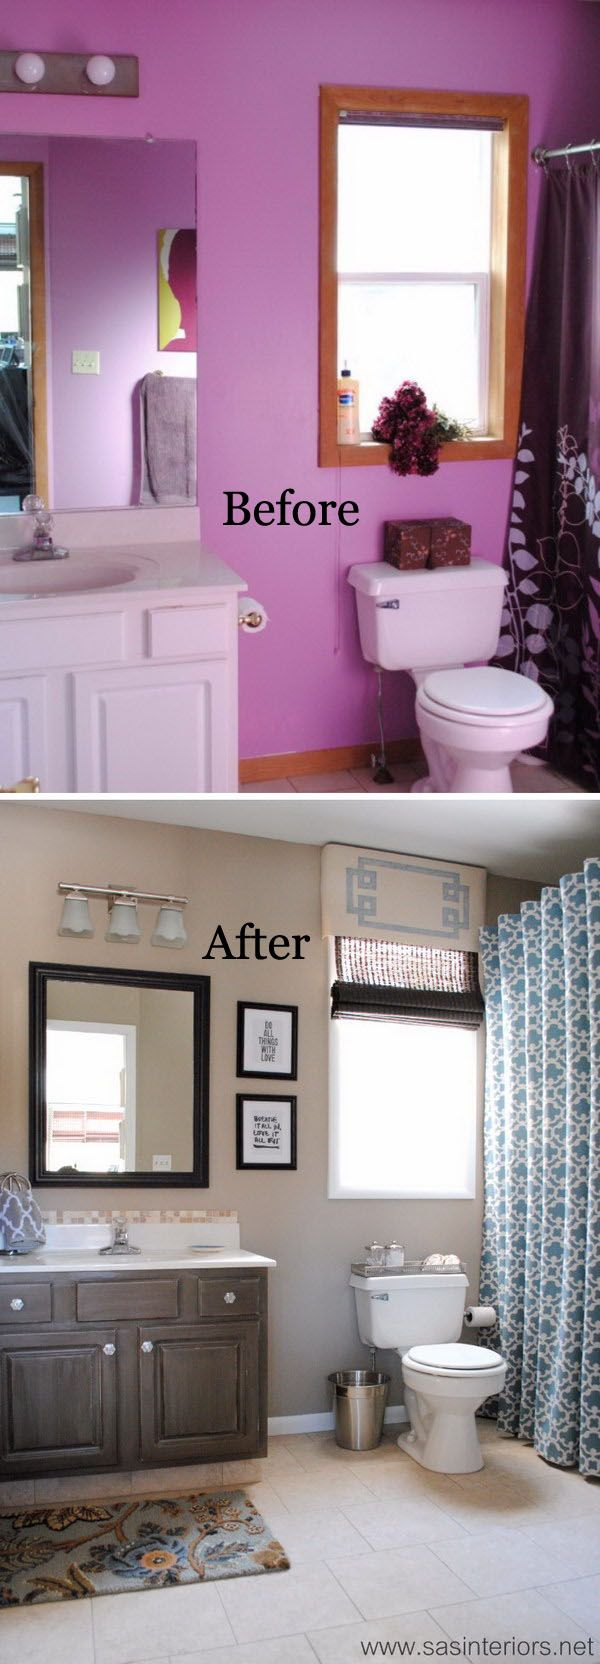 501 best images about for the home ideas on pinterest for Beautiful tiny bathrooms